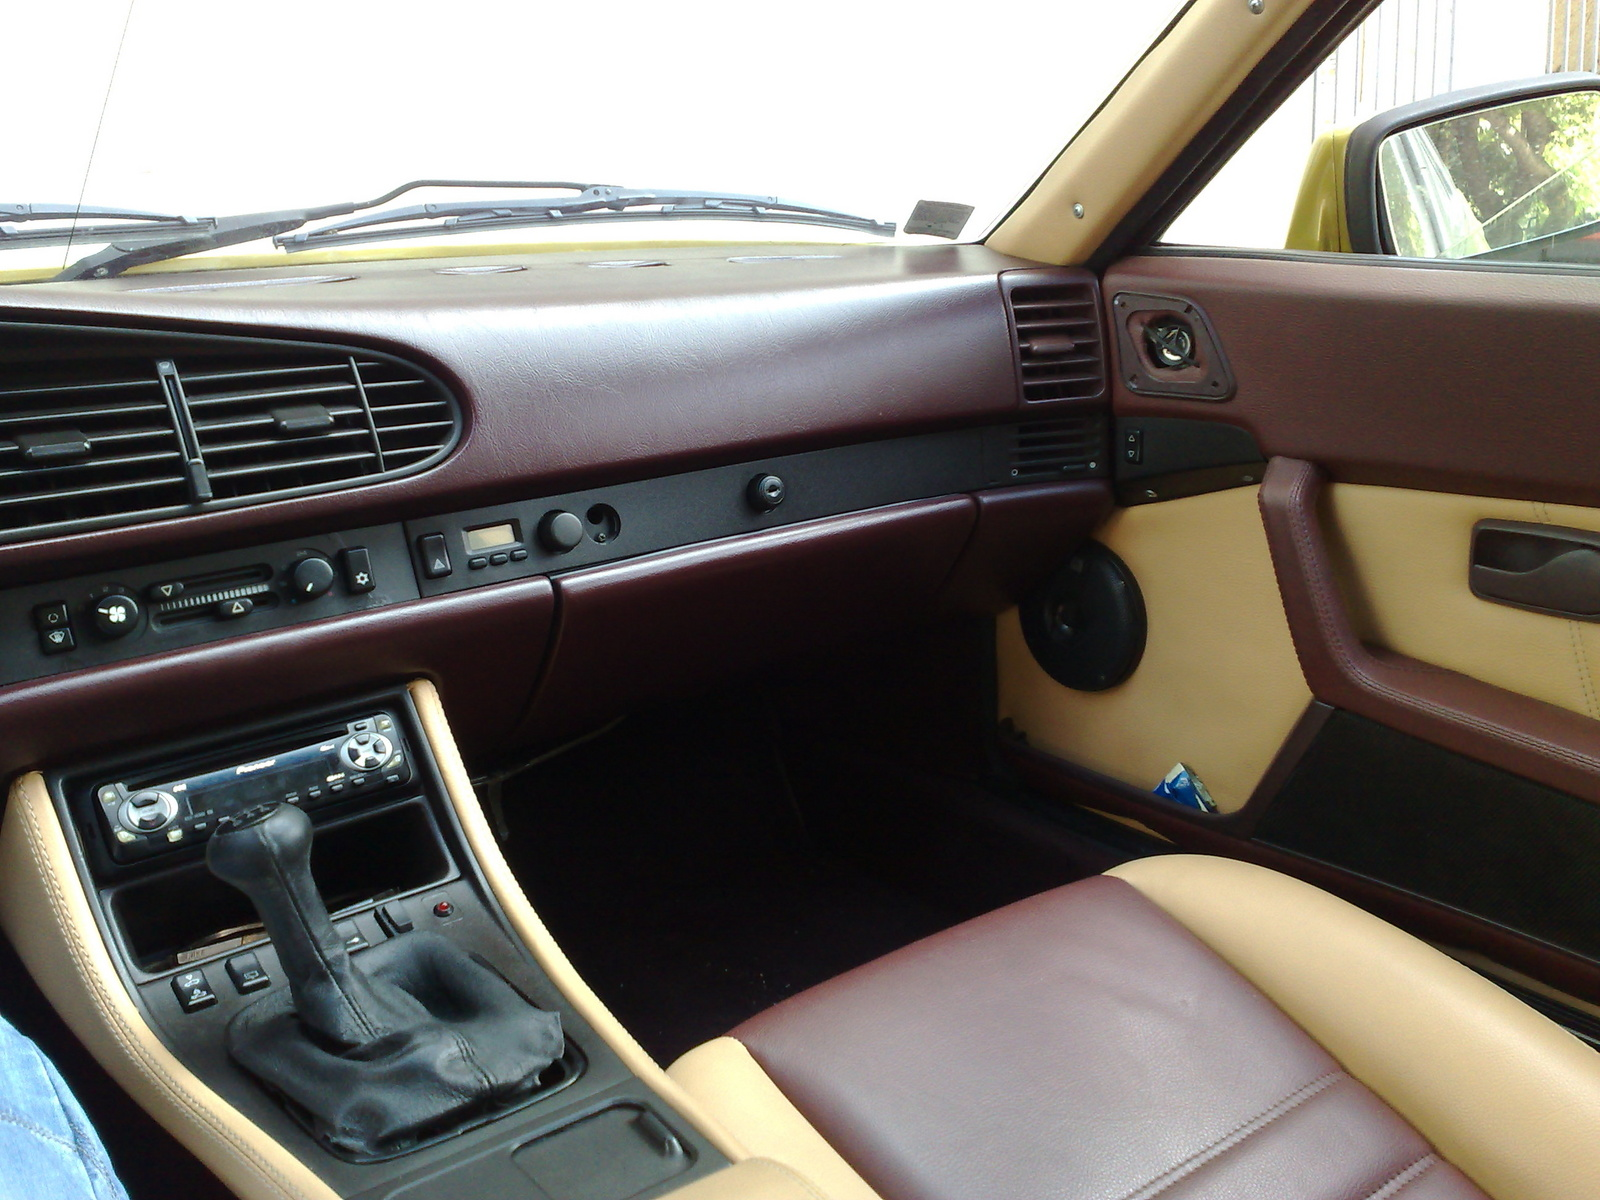 1989 porsche 944 pictures cargurus for Porsche 944 interieur